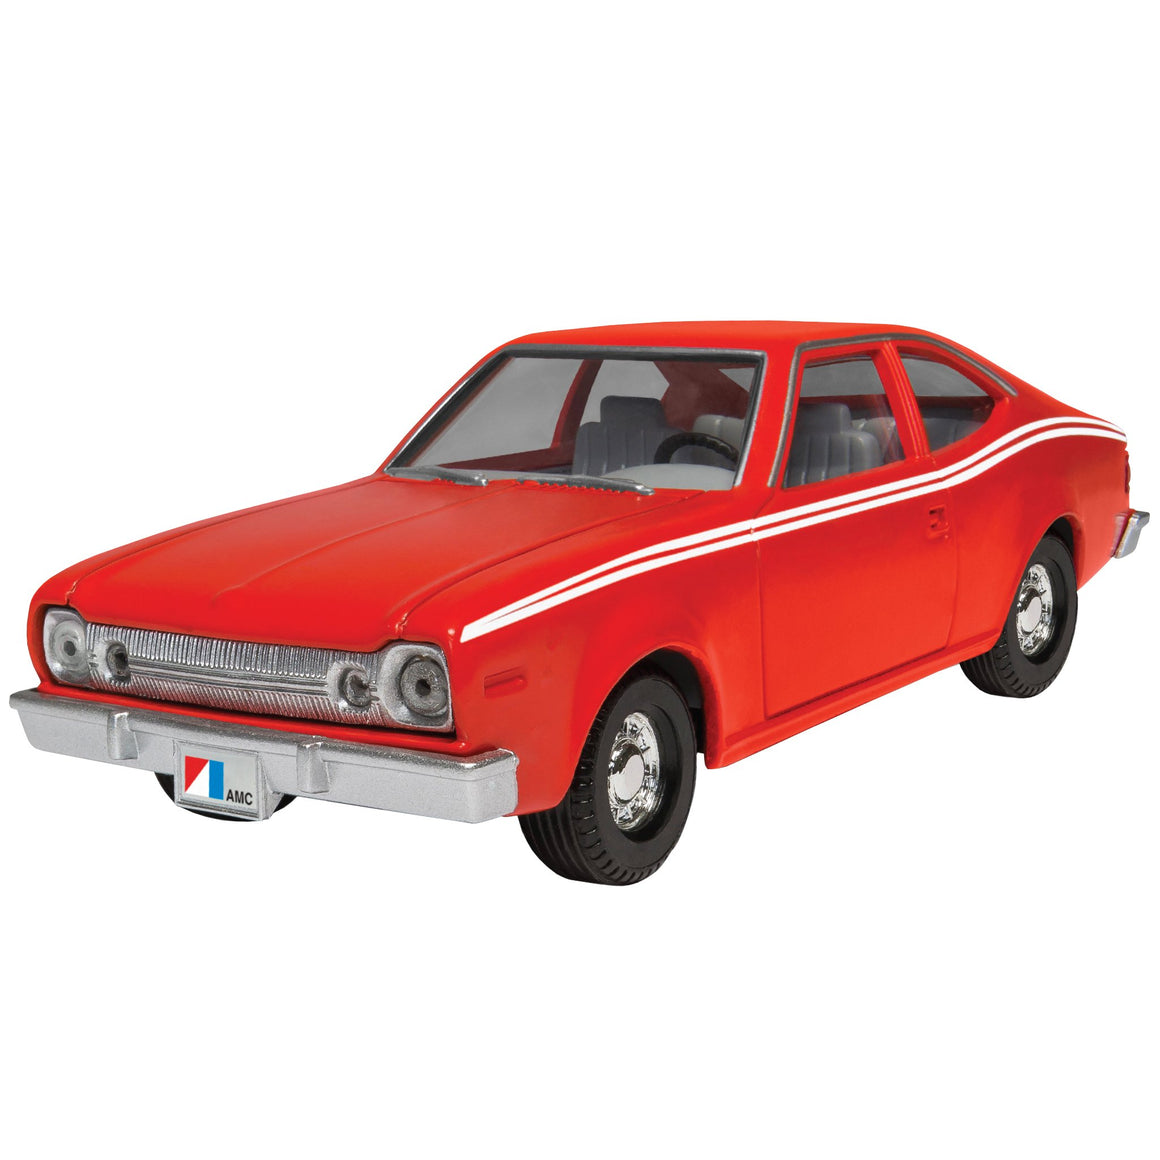 AMC HORNET 1:36 DIE-CAST CORGI MODEL